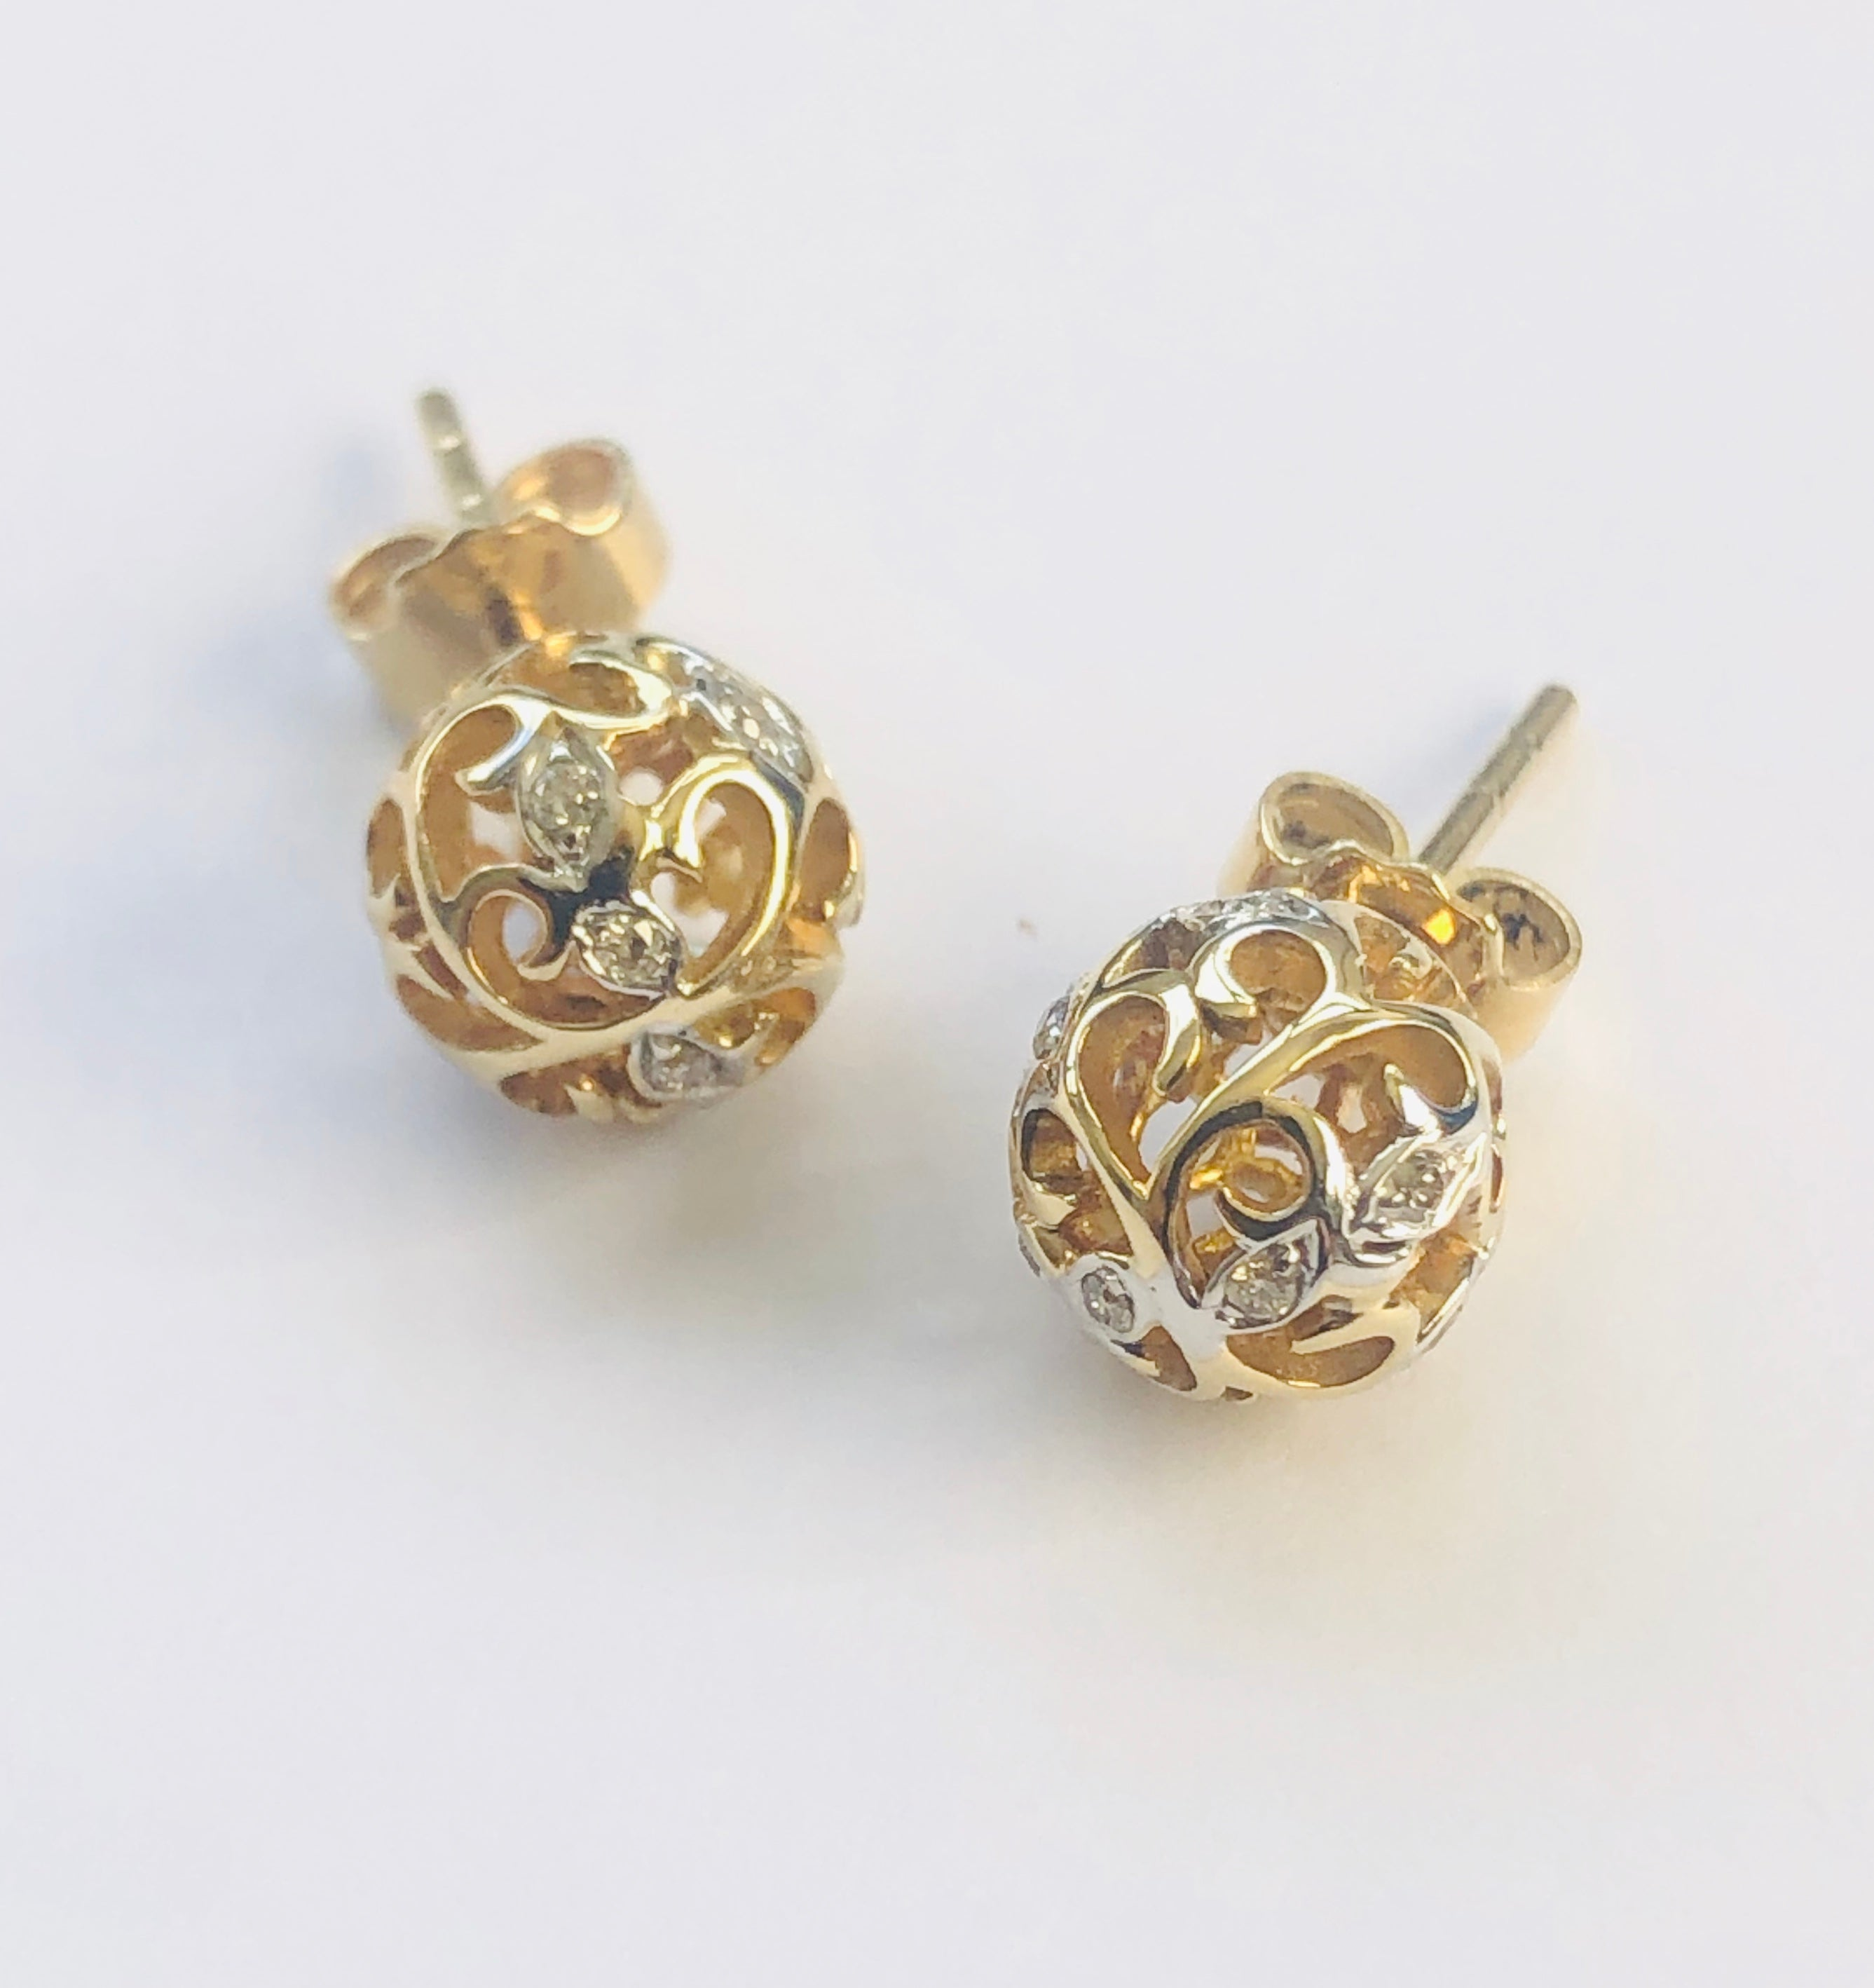 9ct Yellow Gold Filigree Ball Studs with Diamond Setting 8mm - 034